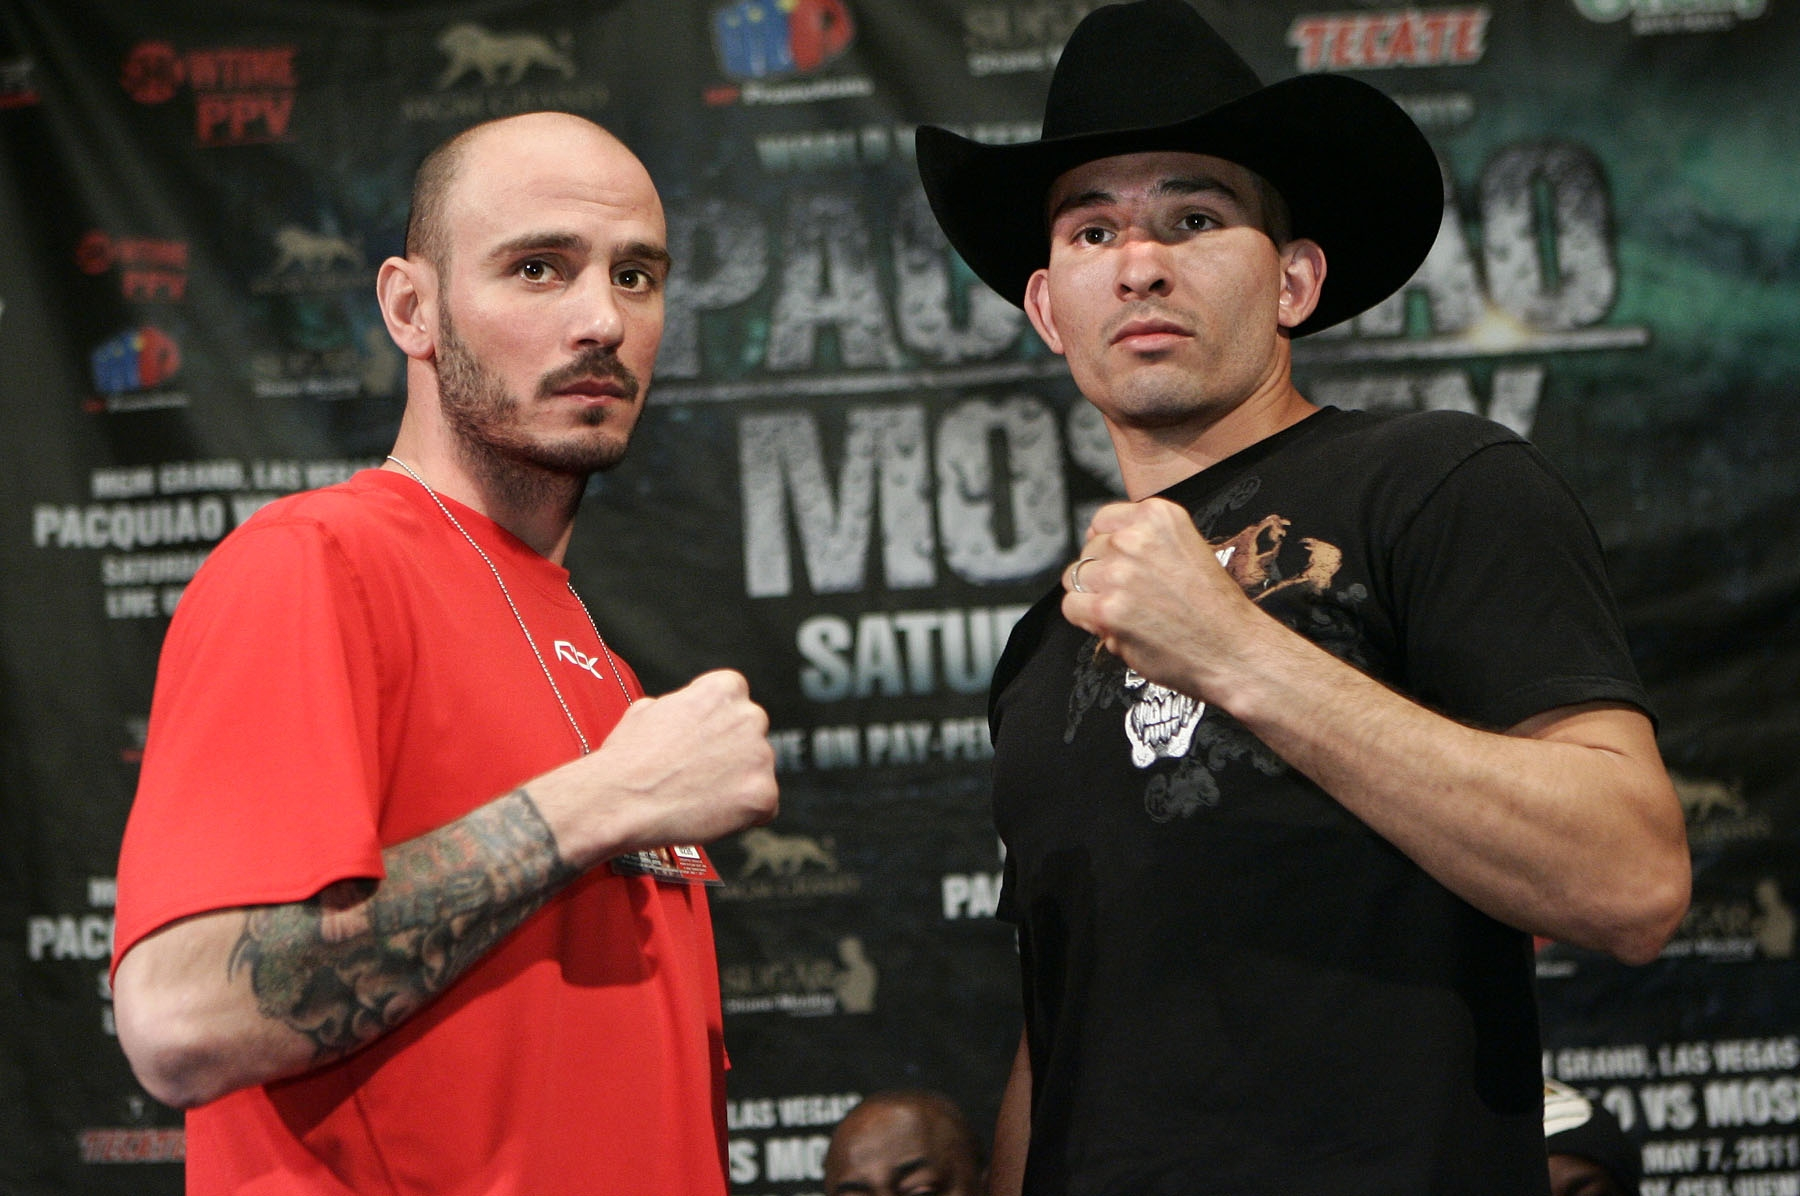 """Former world champion Kelly """"The Ghost"""" Pavlik, Youngstown,Ohio and Alfonso Lopez,Cut & Shoot,Texas pose during the press conference at the MGM Grand for their upcoming feature fight on the undercard of Pacquiao vs Mosley on Saturday, May 7.  Photo by Chris Farina - Top Rank"""